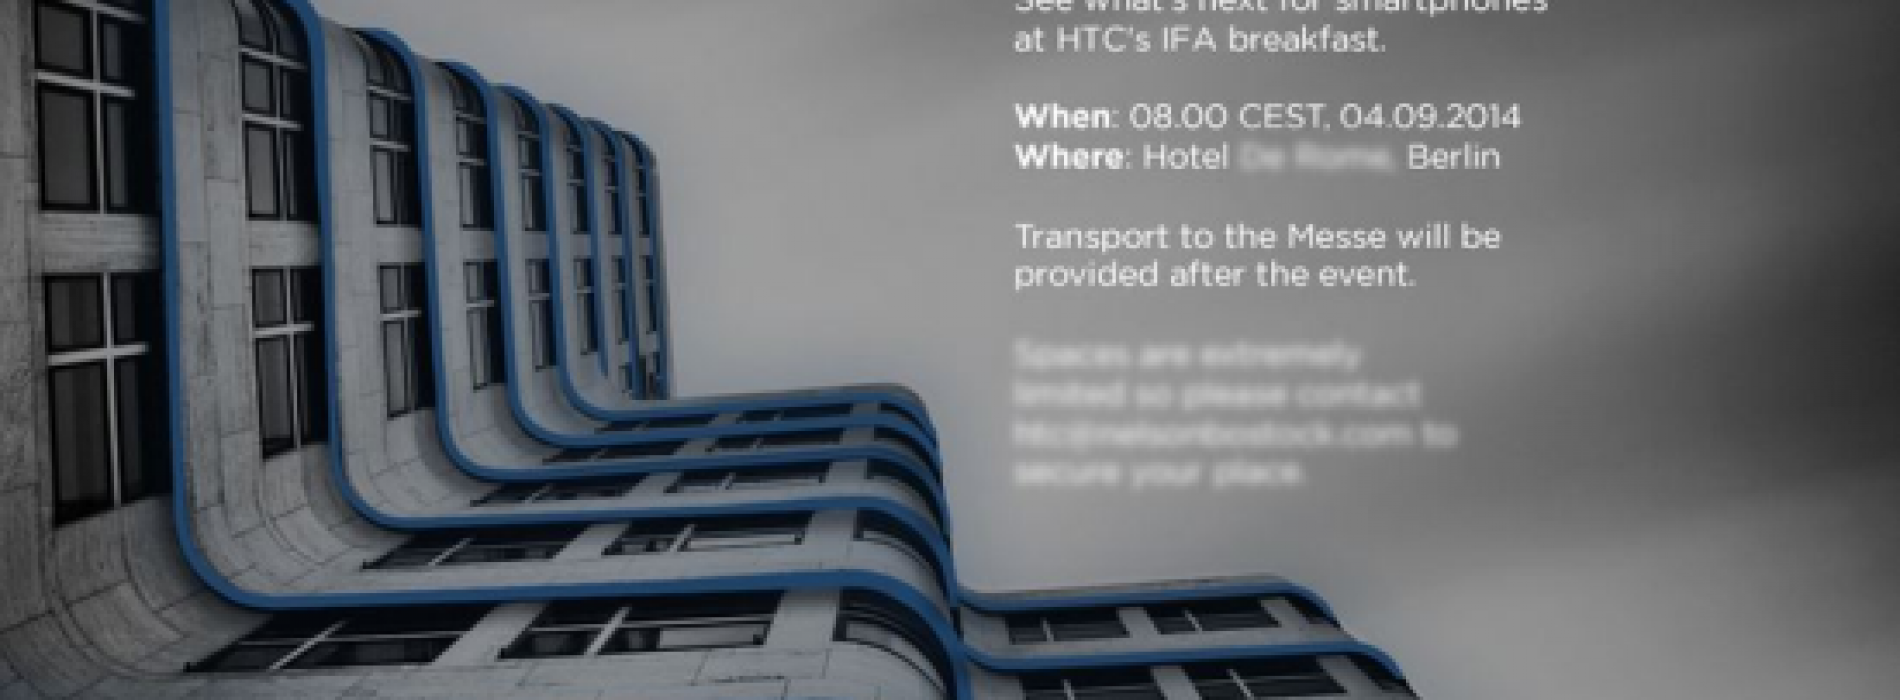 HTC could announce a Snapdragon 615-powered Desire at IFA